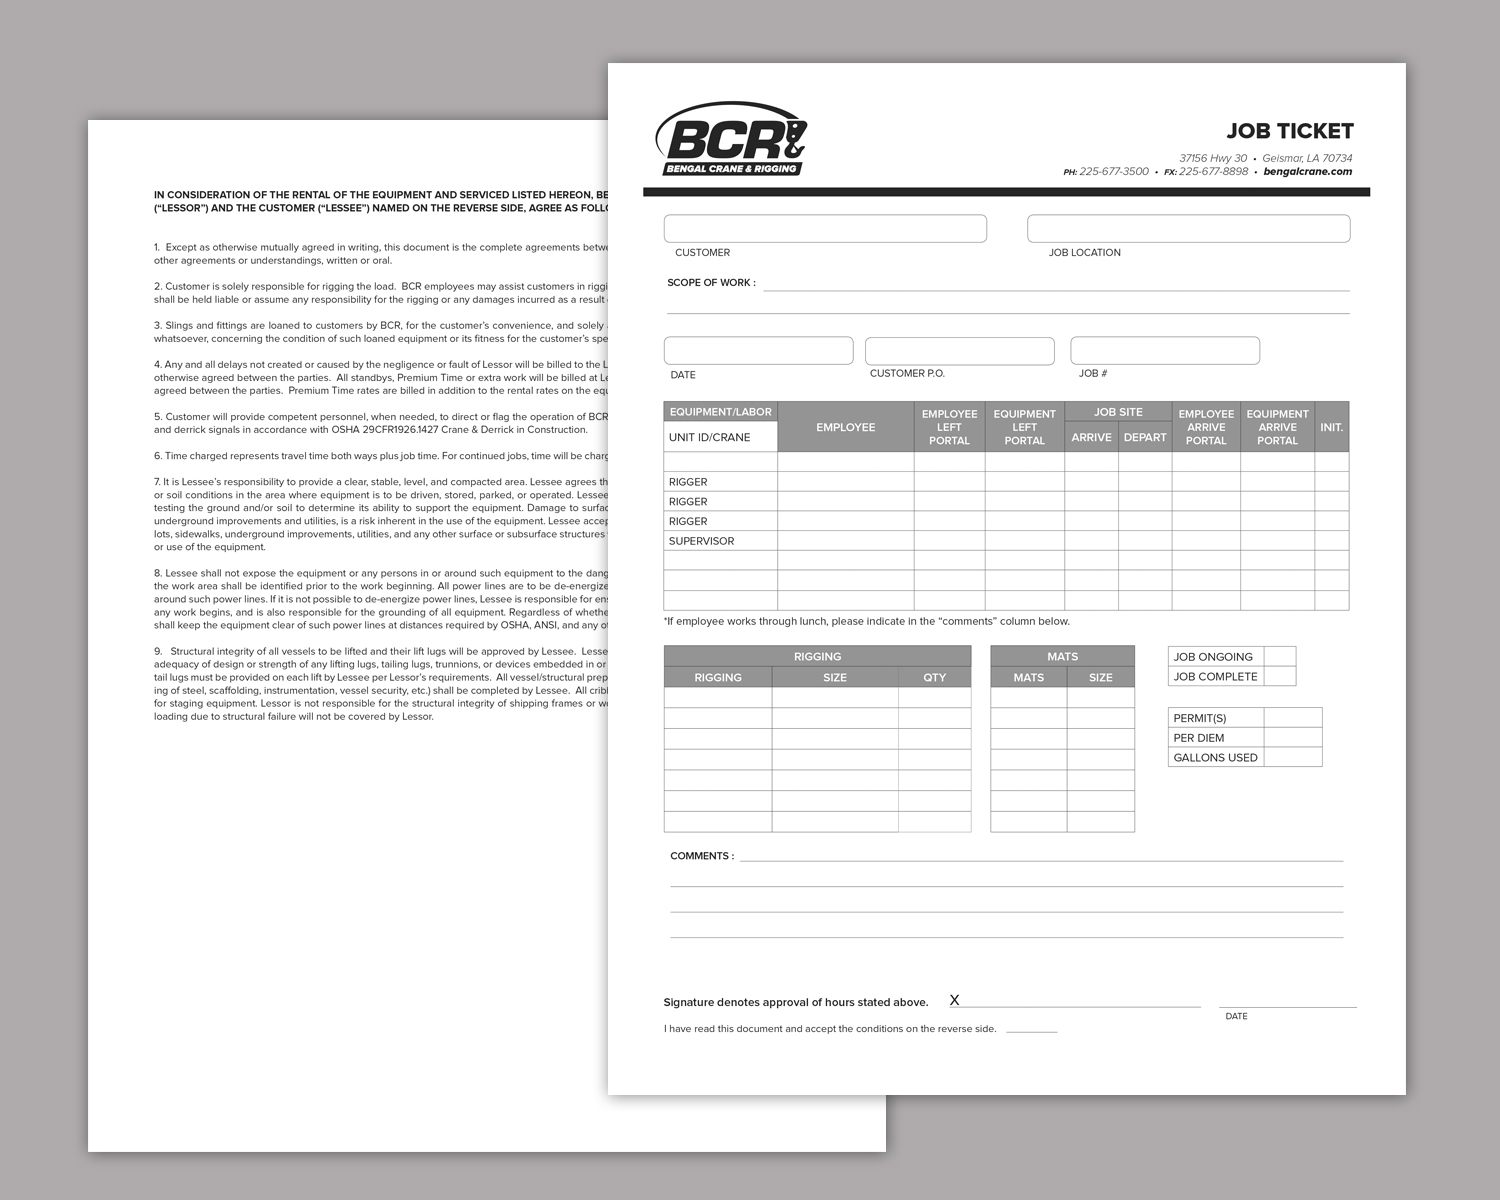 Form Sample 1.jpg